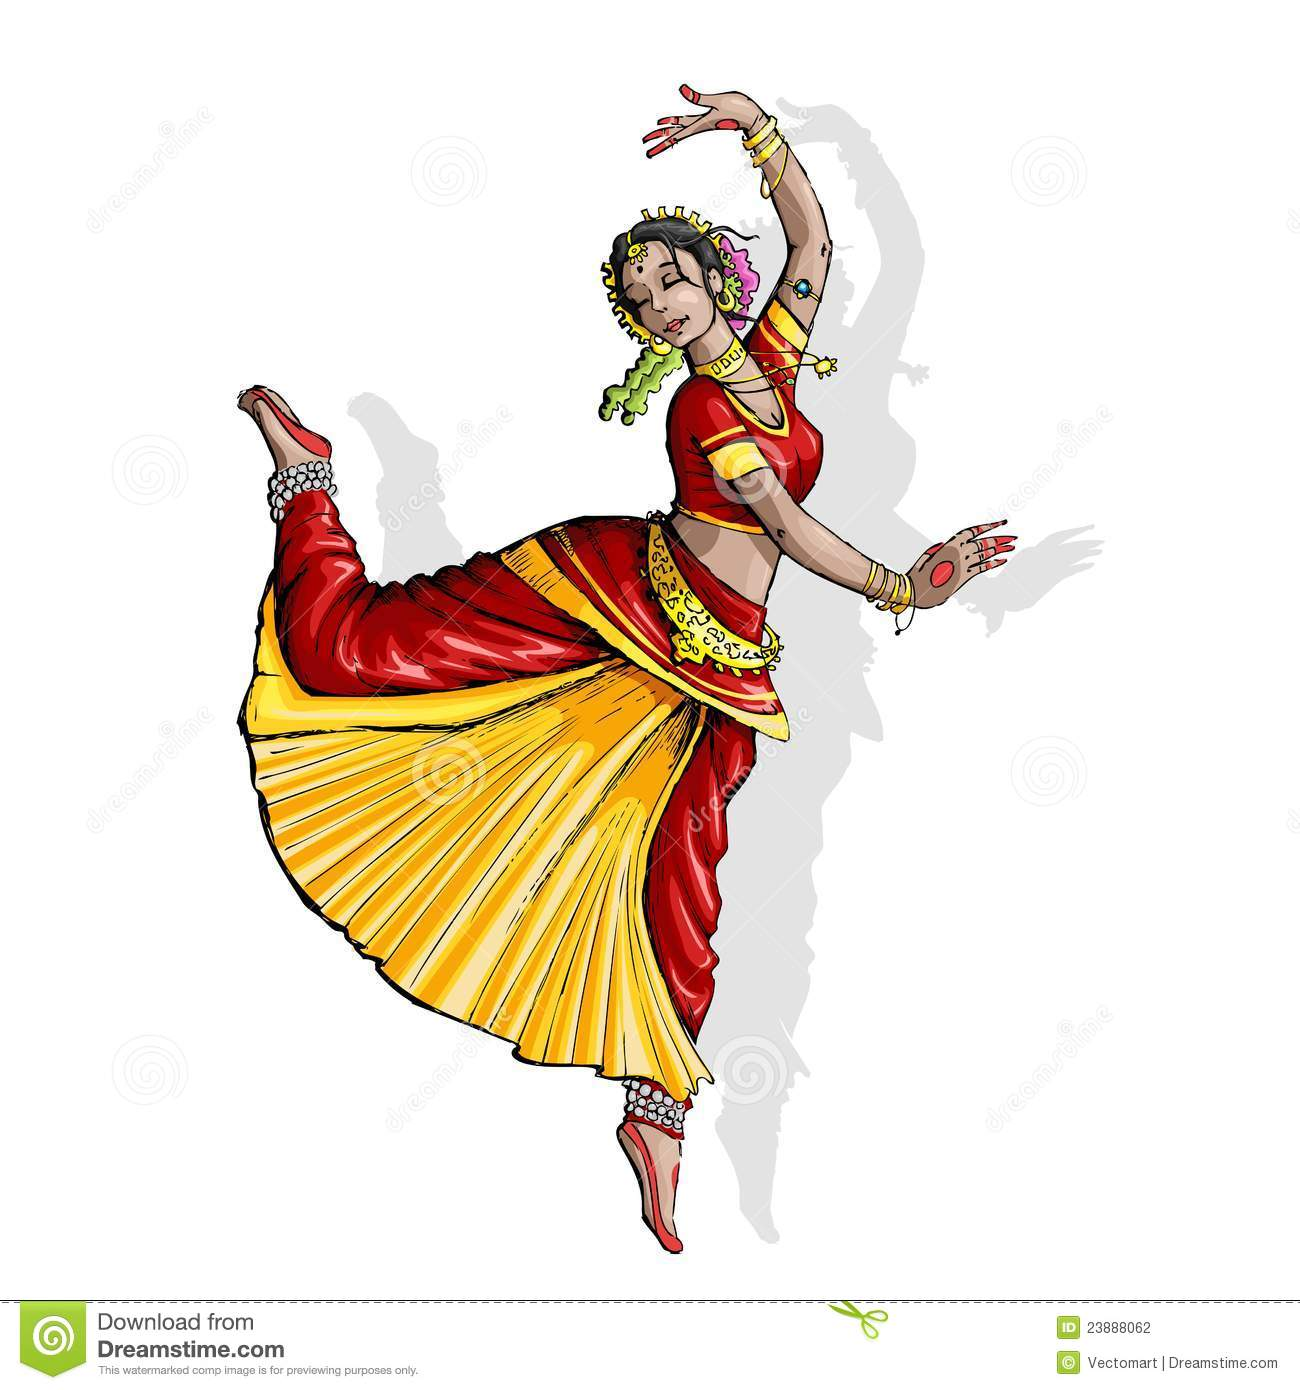 Traditional dance clipart picture royalty free library Traditional dance clipart - ClipartFest picture royalty free library